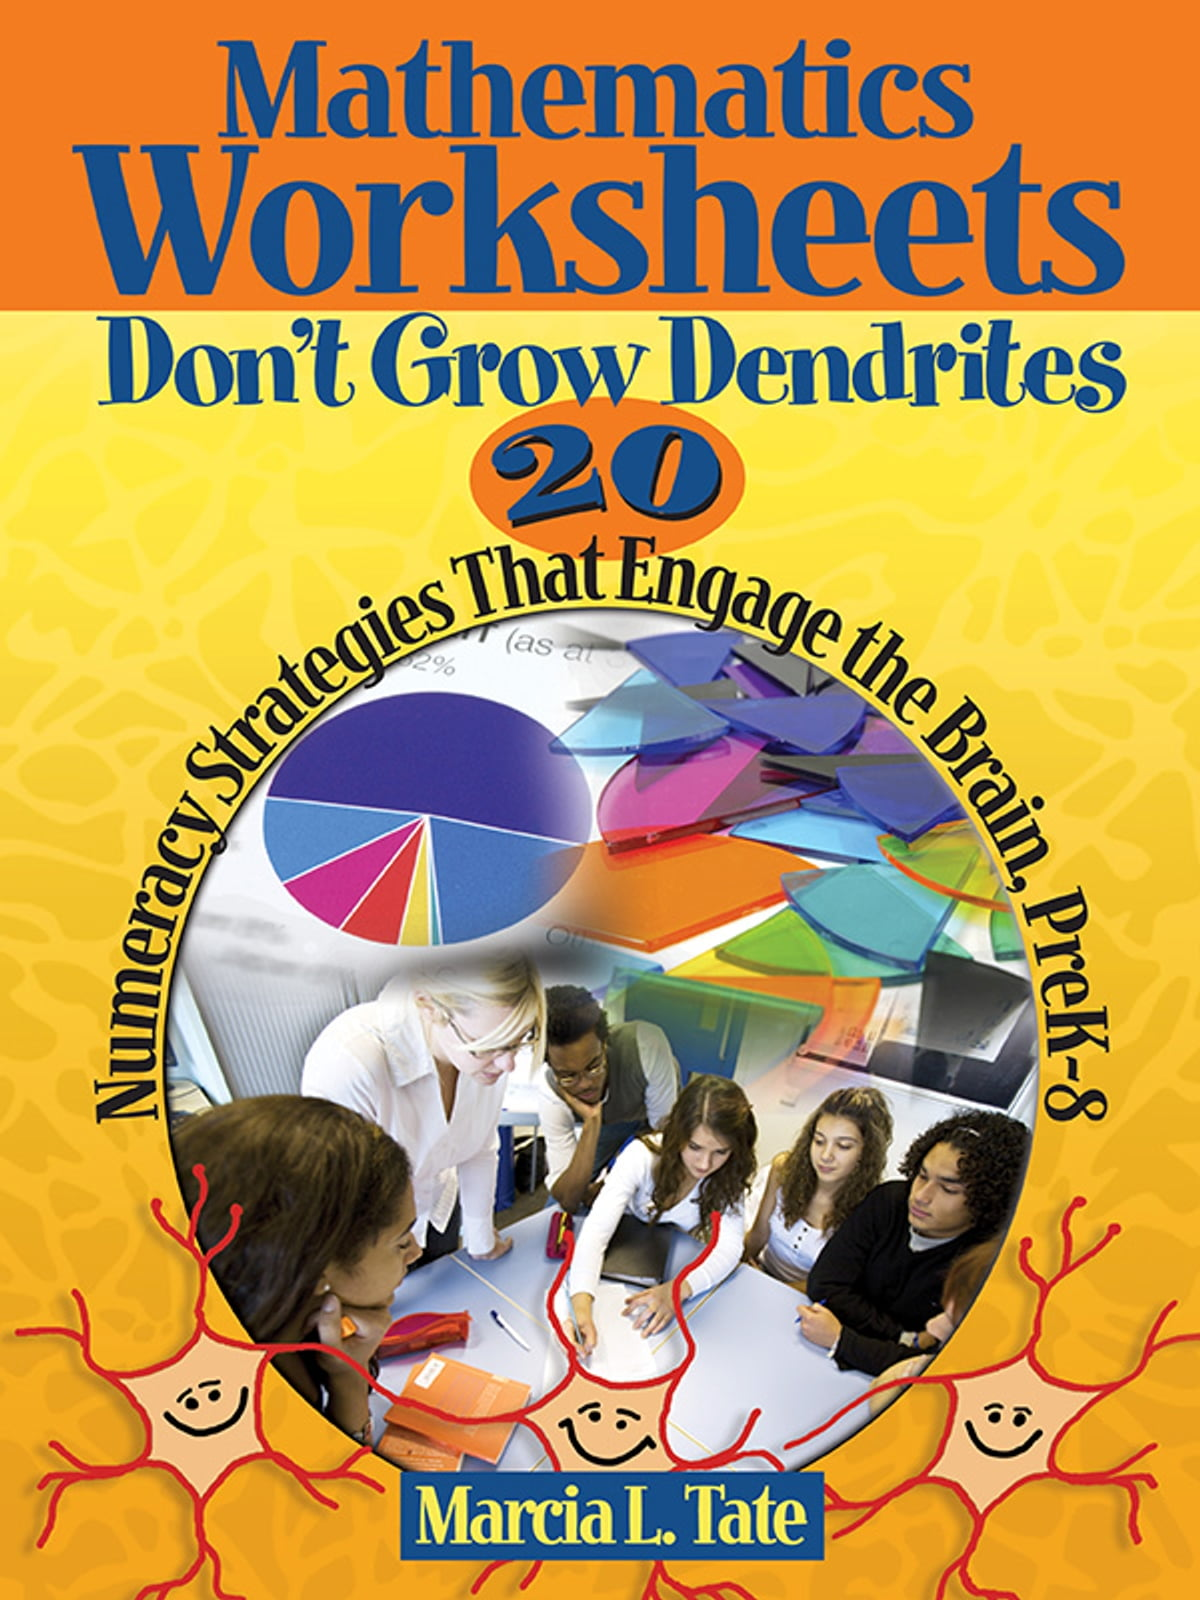 Worksheets Worksheets Don T Grow Dendrites mathematics worksheets dont grow dendrites ebook by marcia l tate 9781452294858 rakuten kobo